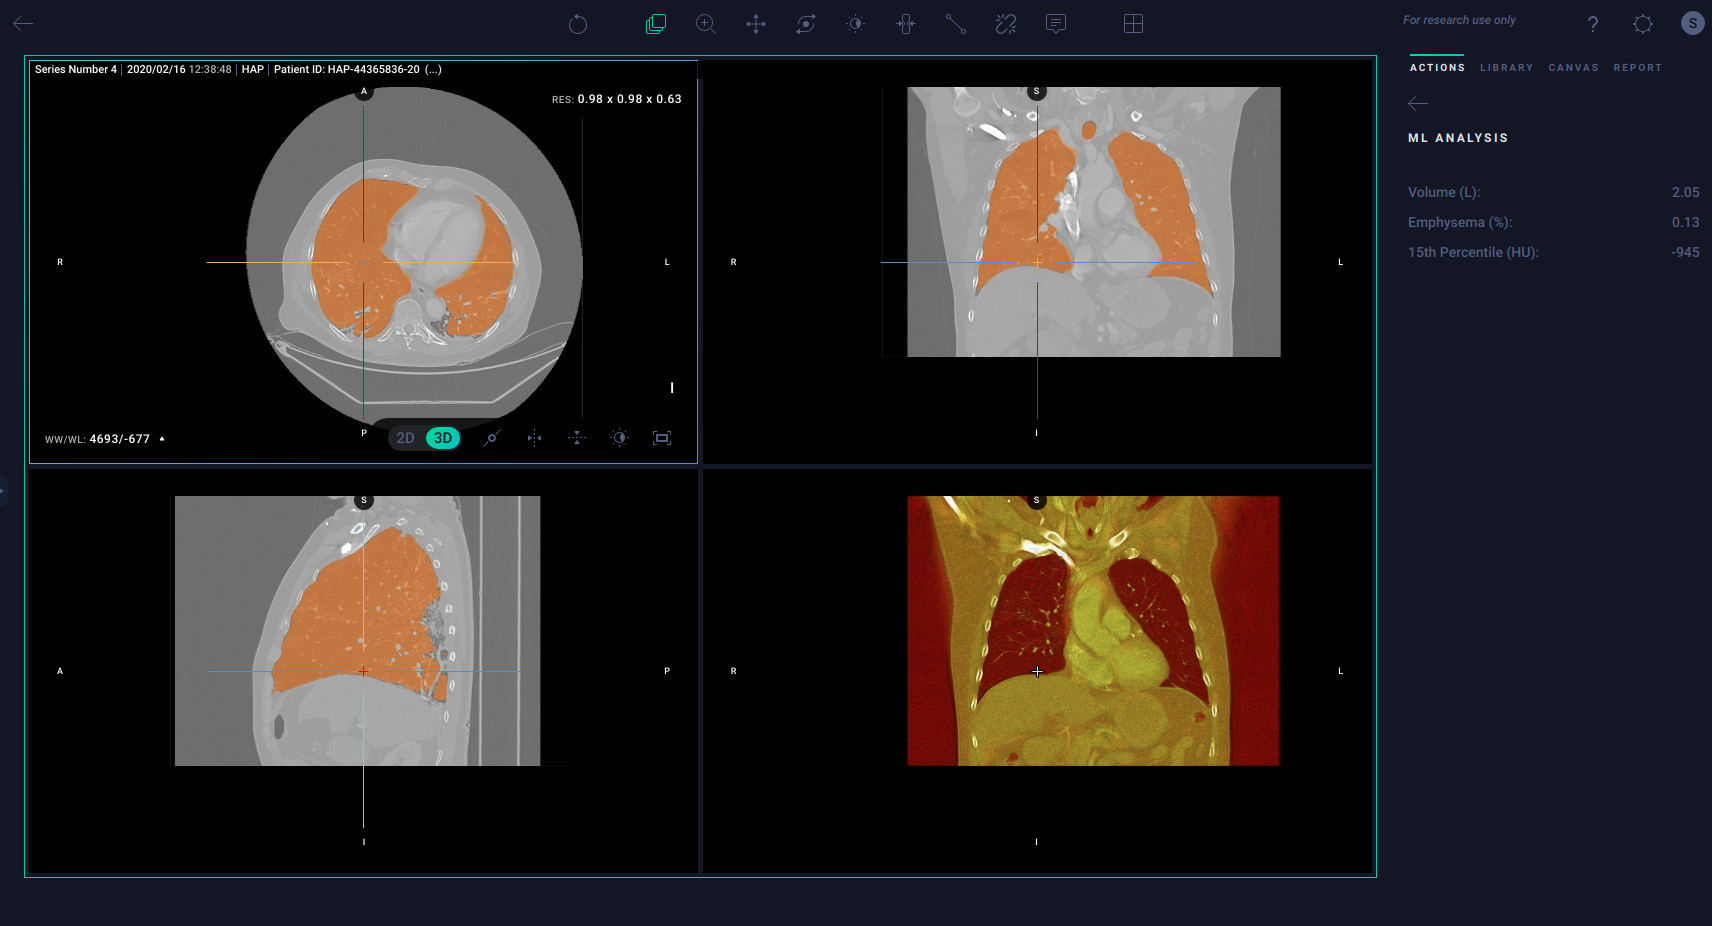 Segmentation and characterization of lung parenchyma